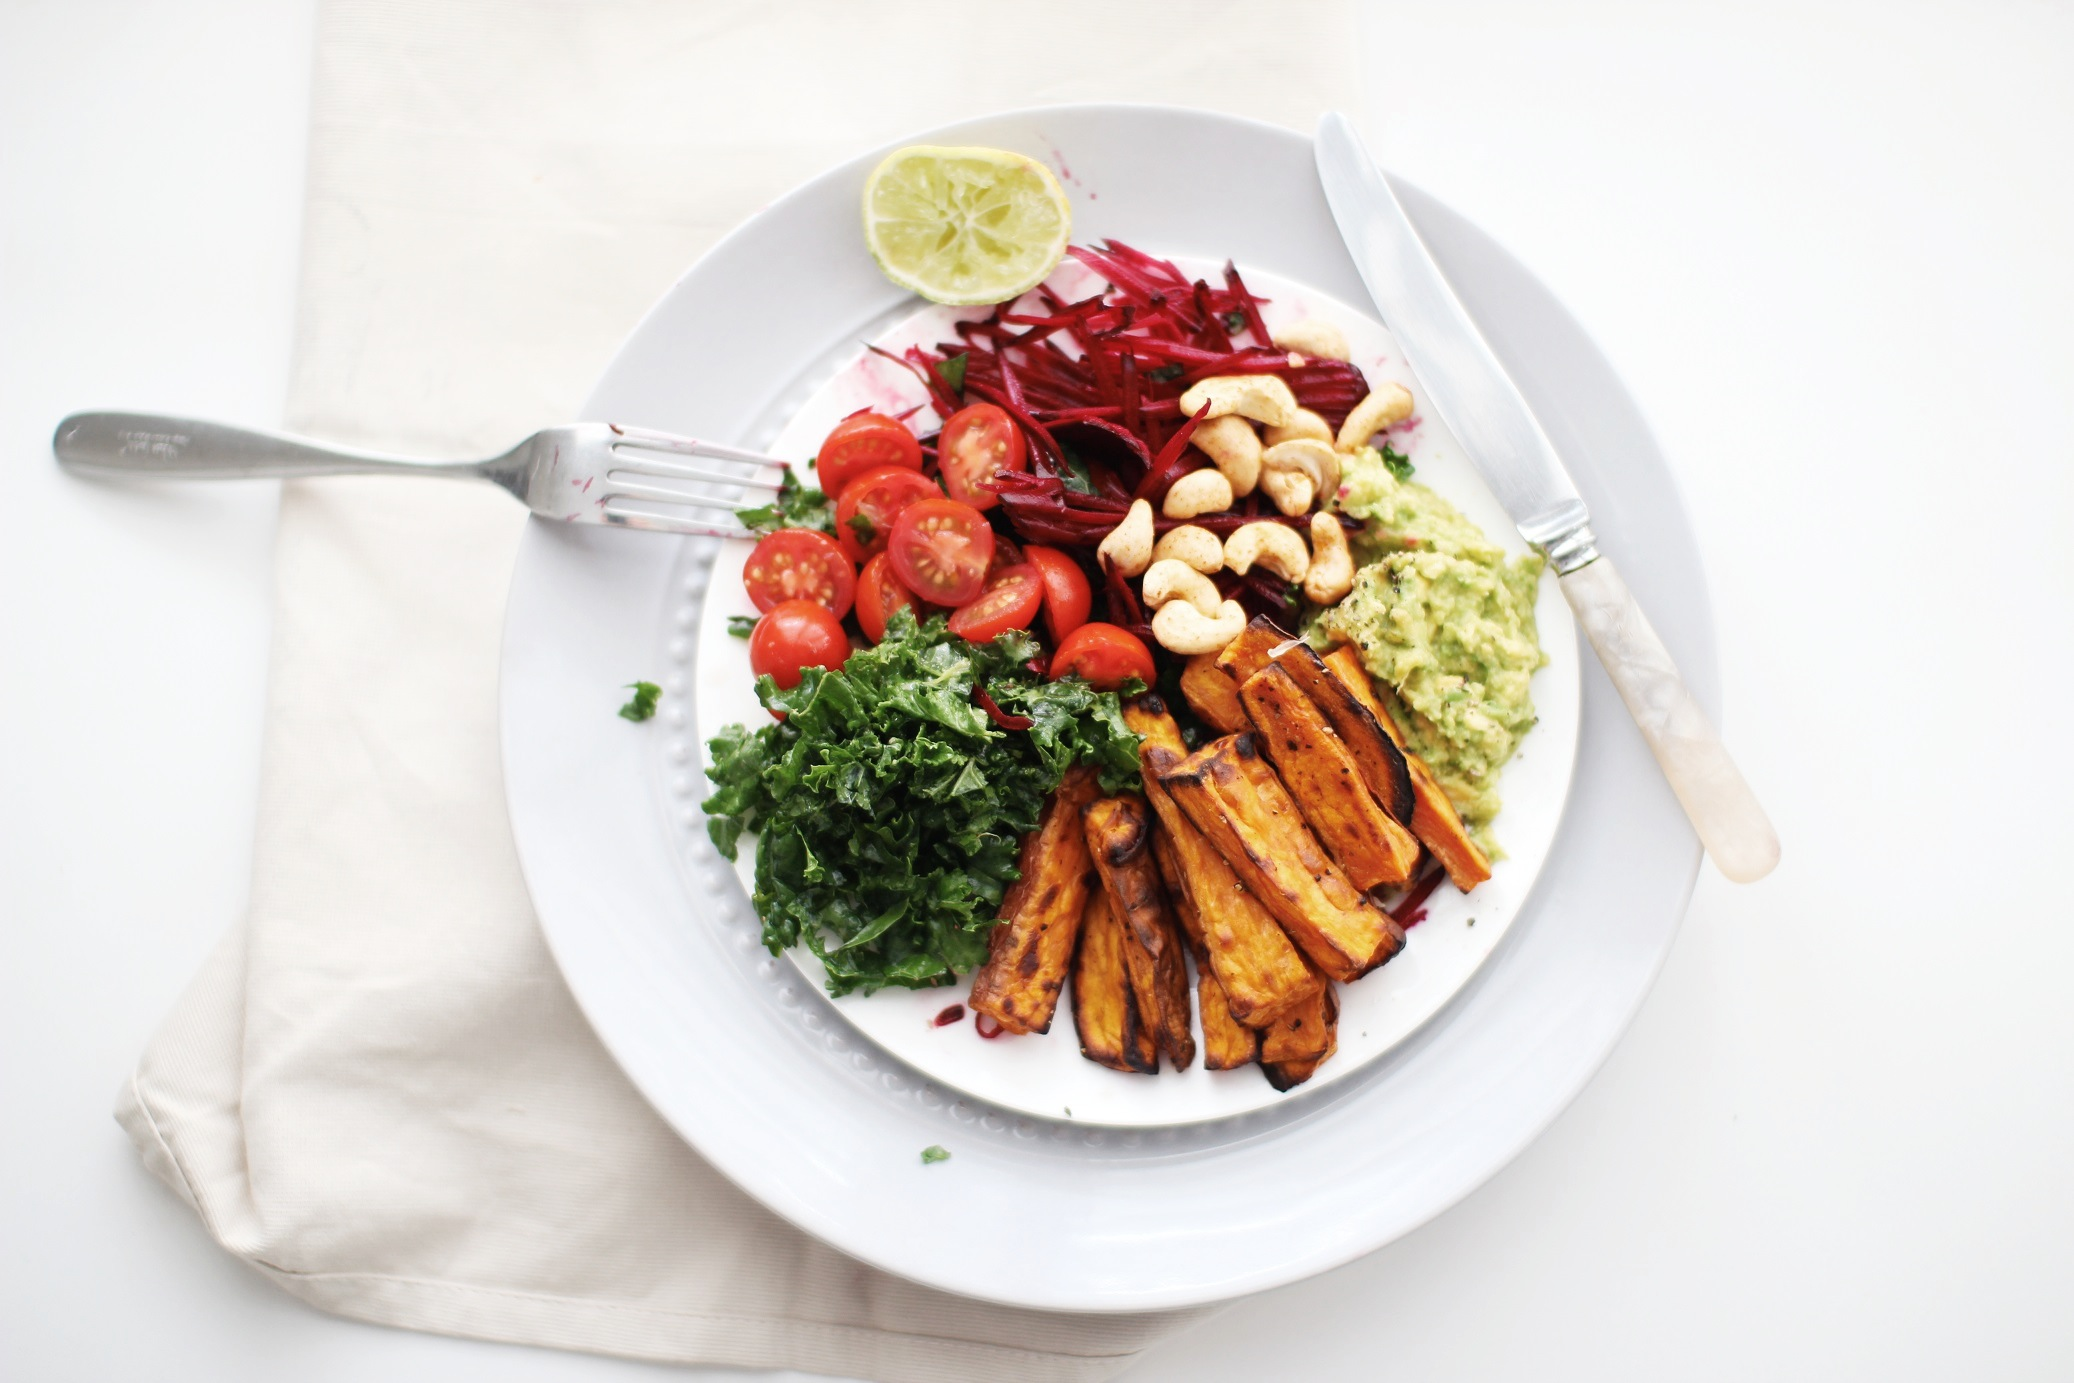 The Bountiful Lunch Plate - raw, vegan, delicious lunch by 'Not Your Typical Dietitian'